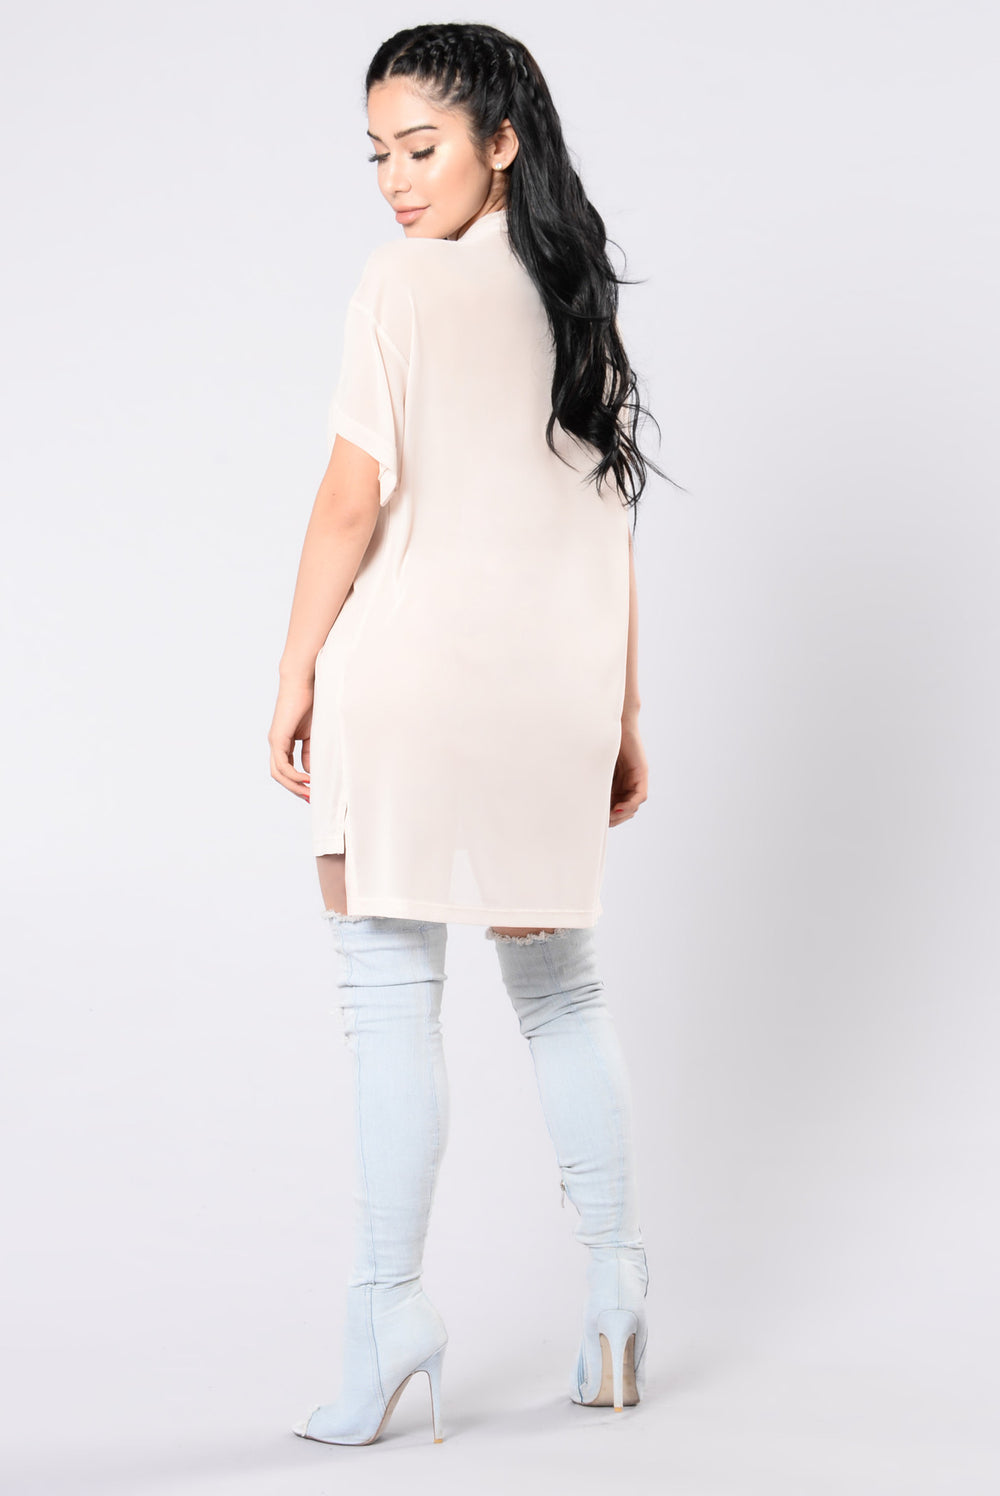 Give You My All Tunic - Nude/White